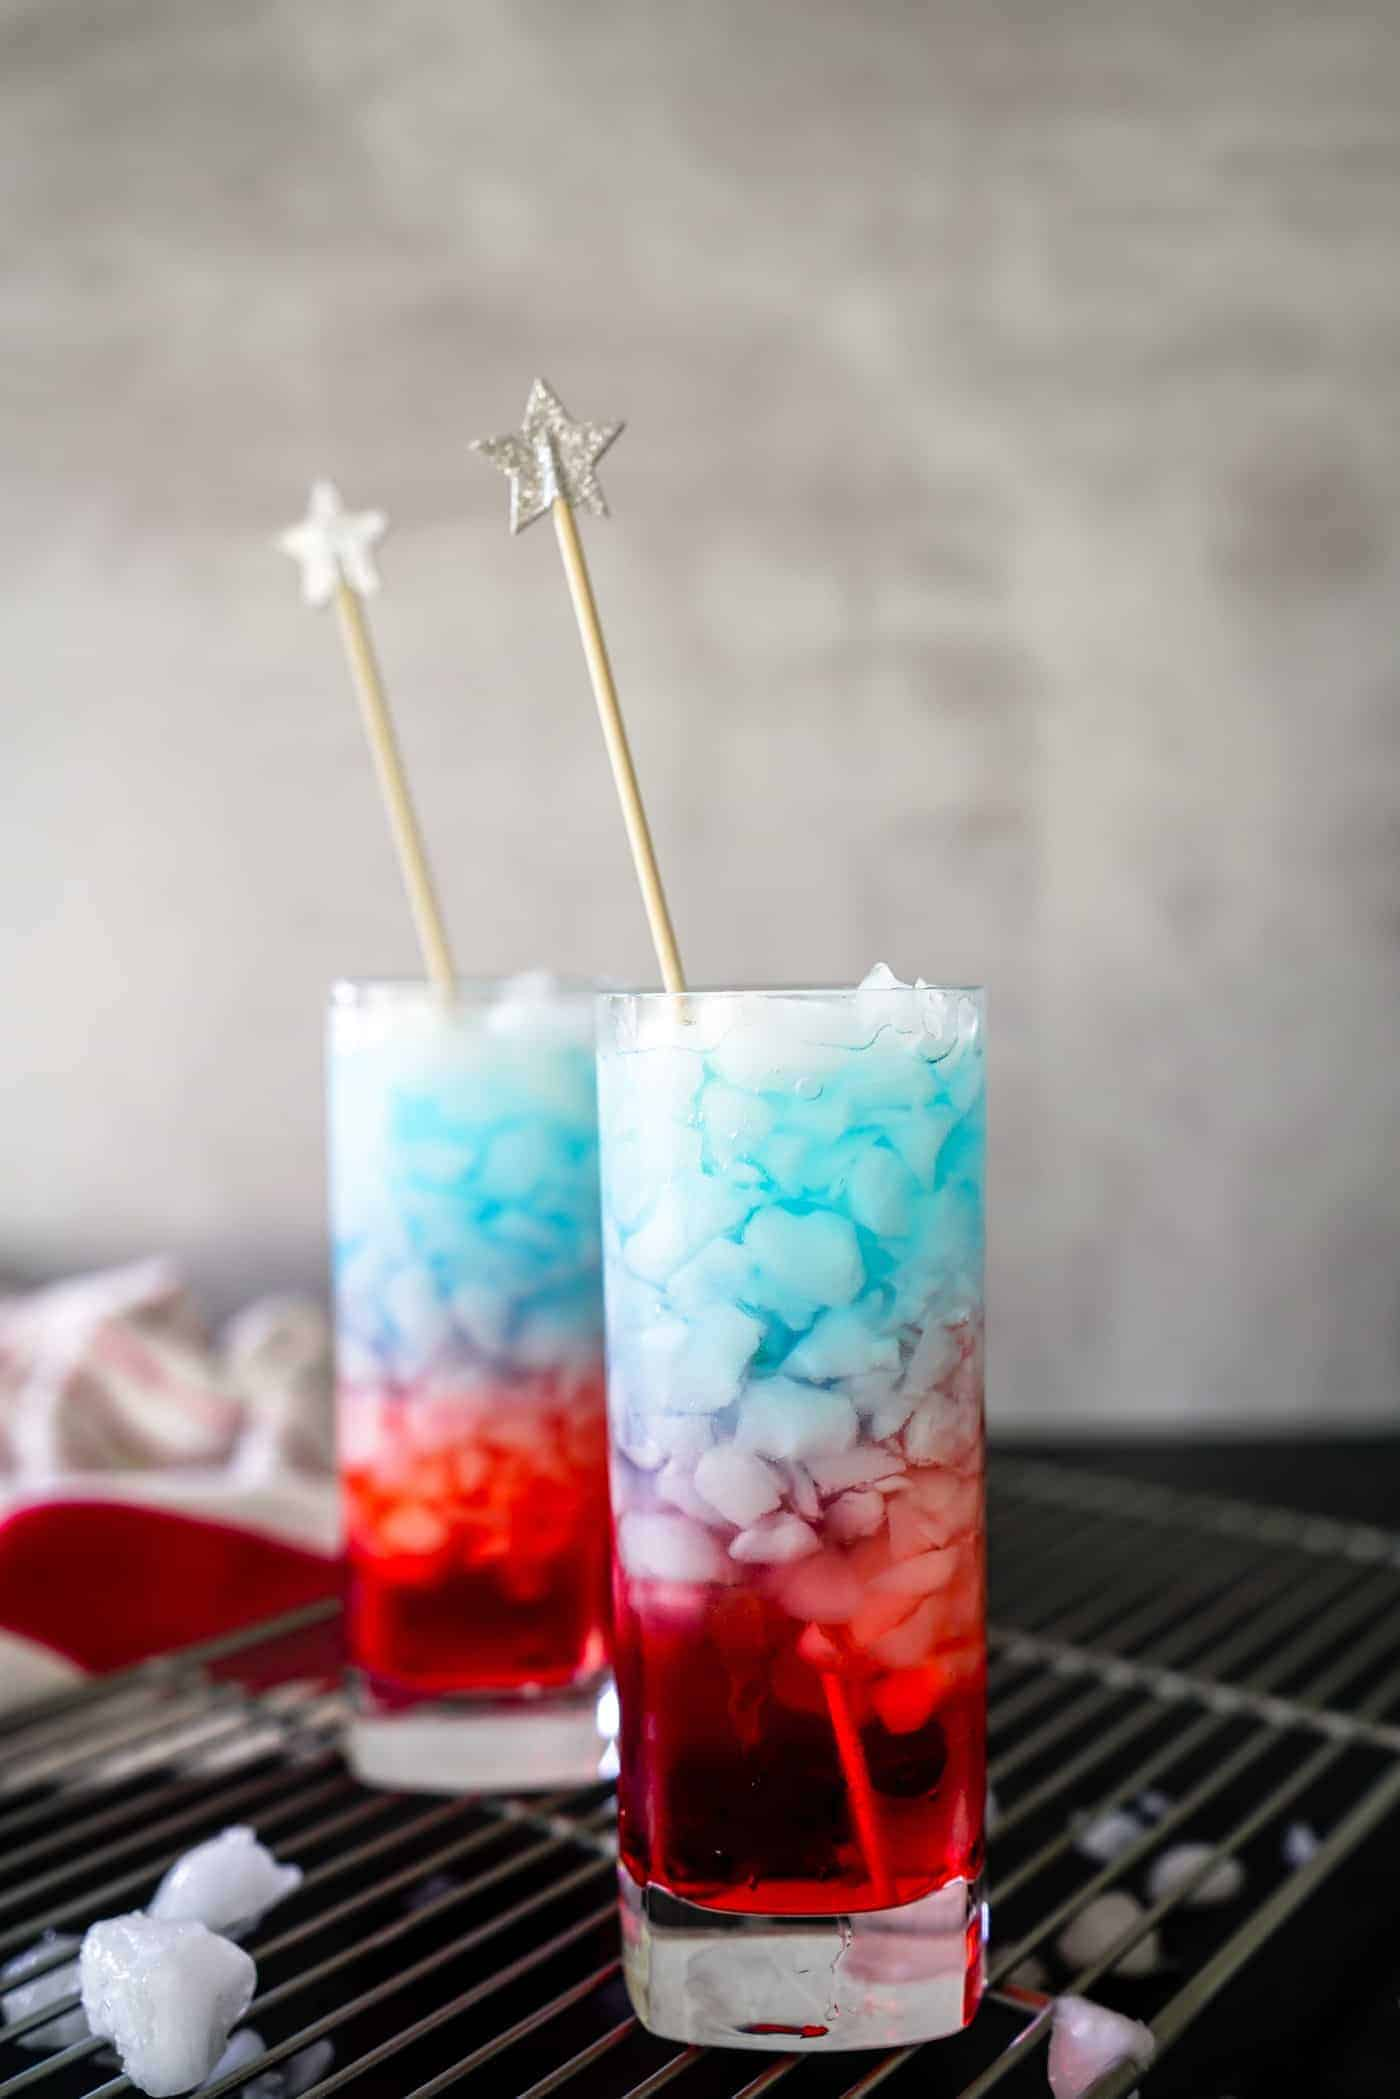 Two tall glasses filled with a red, white and blue bomb pop drink